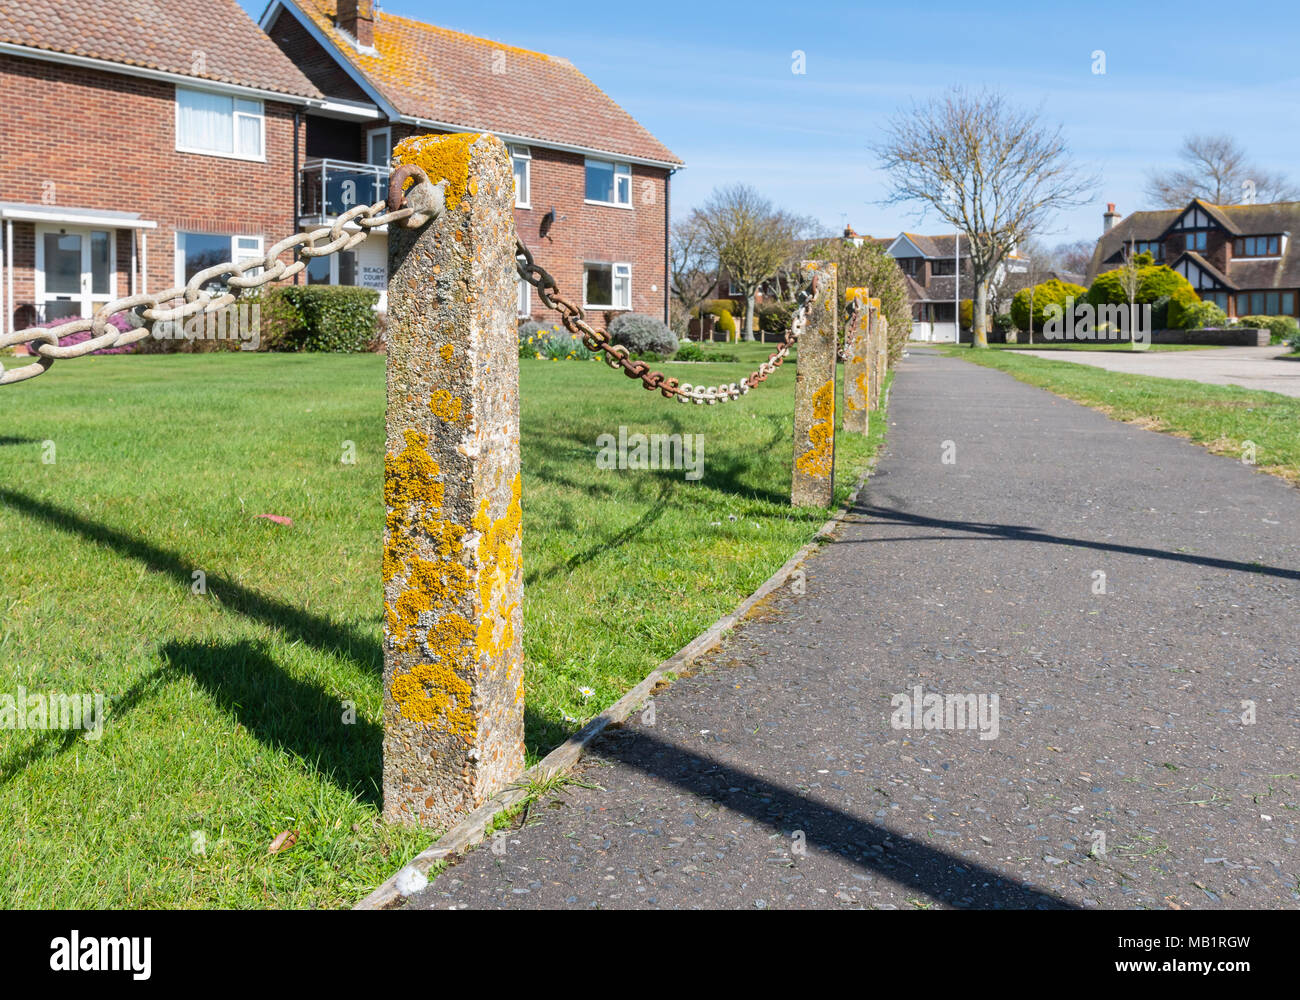 Post and chain low security fence at the end of a front garden with concrete posts covered in moss, by a pavement in England, UK - Stock Image